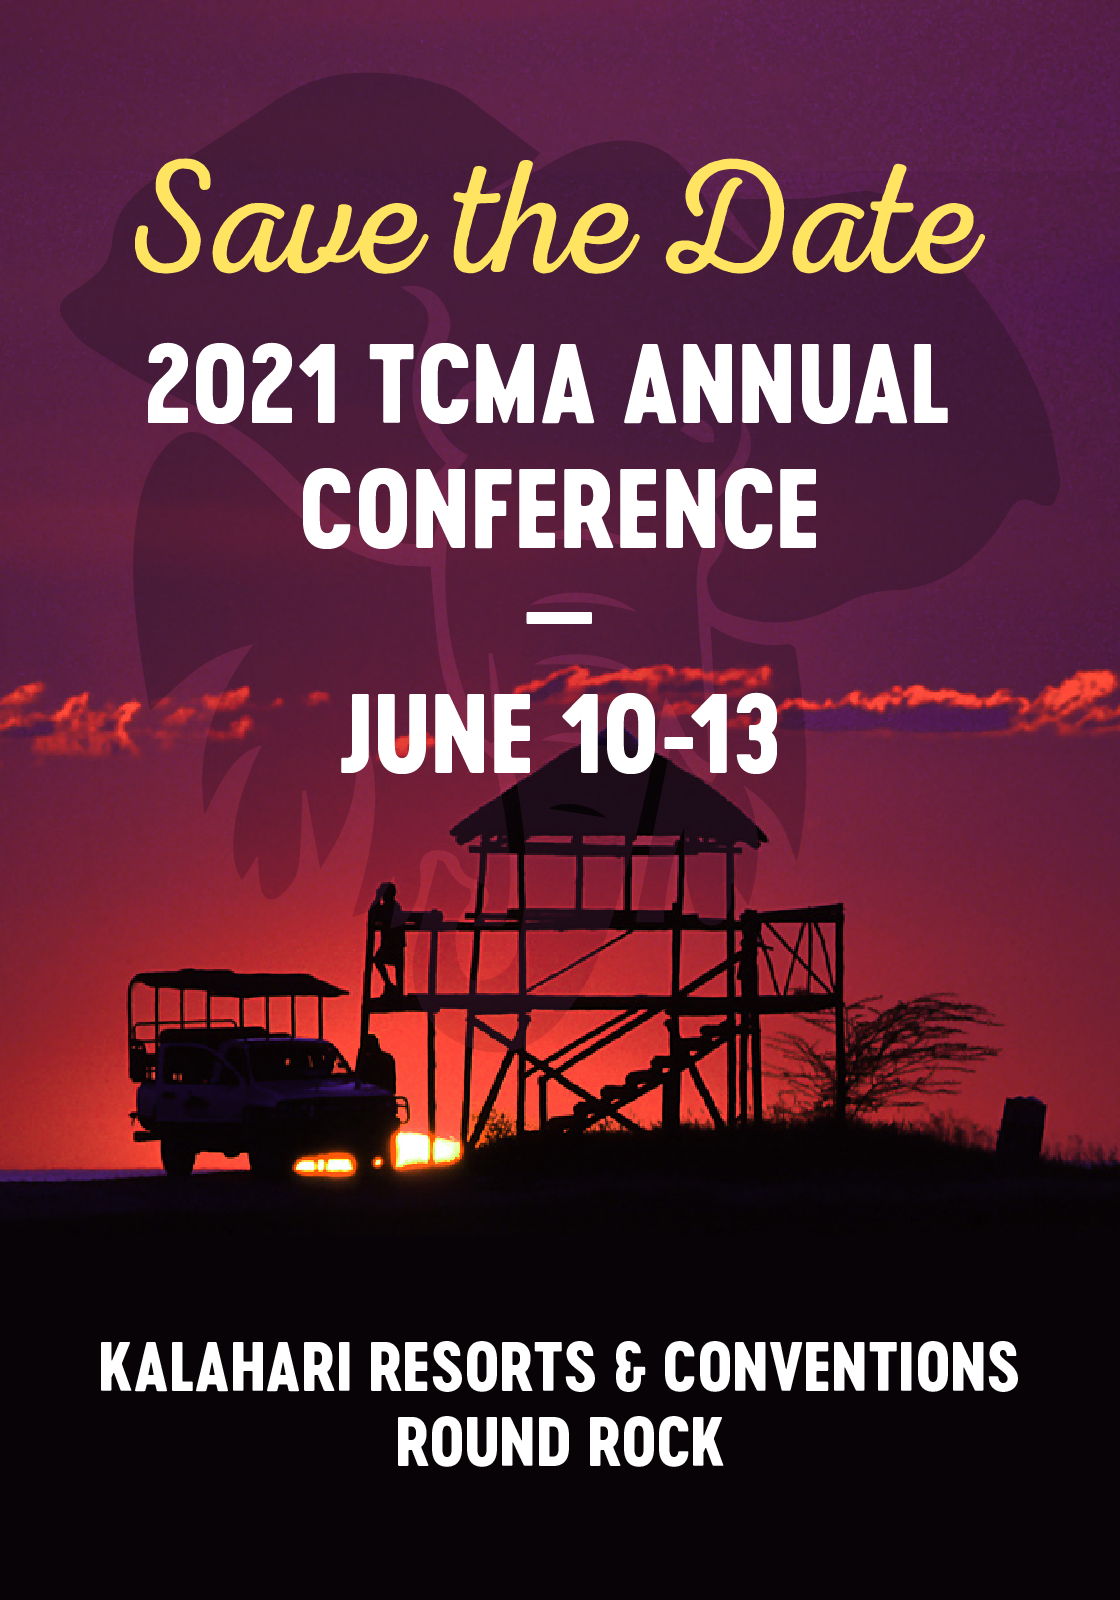 2021 Annual Conference save the date